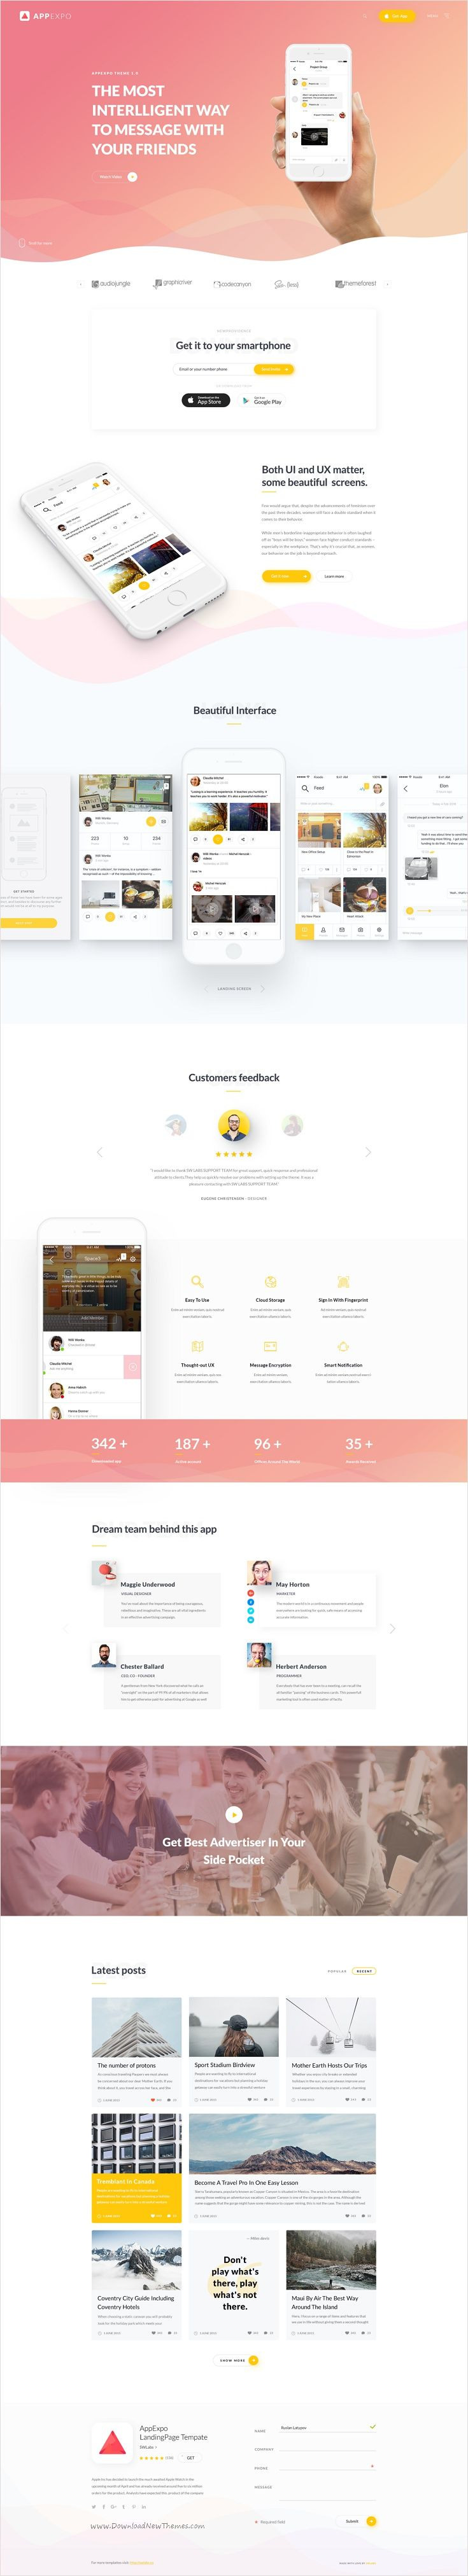 AppExpo is a creative and unique #PSD #template for amazing #apps landing page website with 6 multipurpose homepage layouts and 13 detailed layered PSD files download now➩ https://themeforest.net/item/appexpo-multipurpose-app-landingpage-psd-template/17447950?ref=Datasata